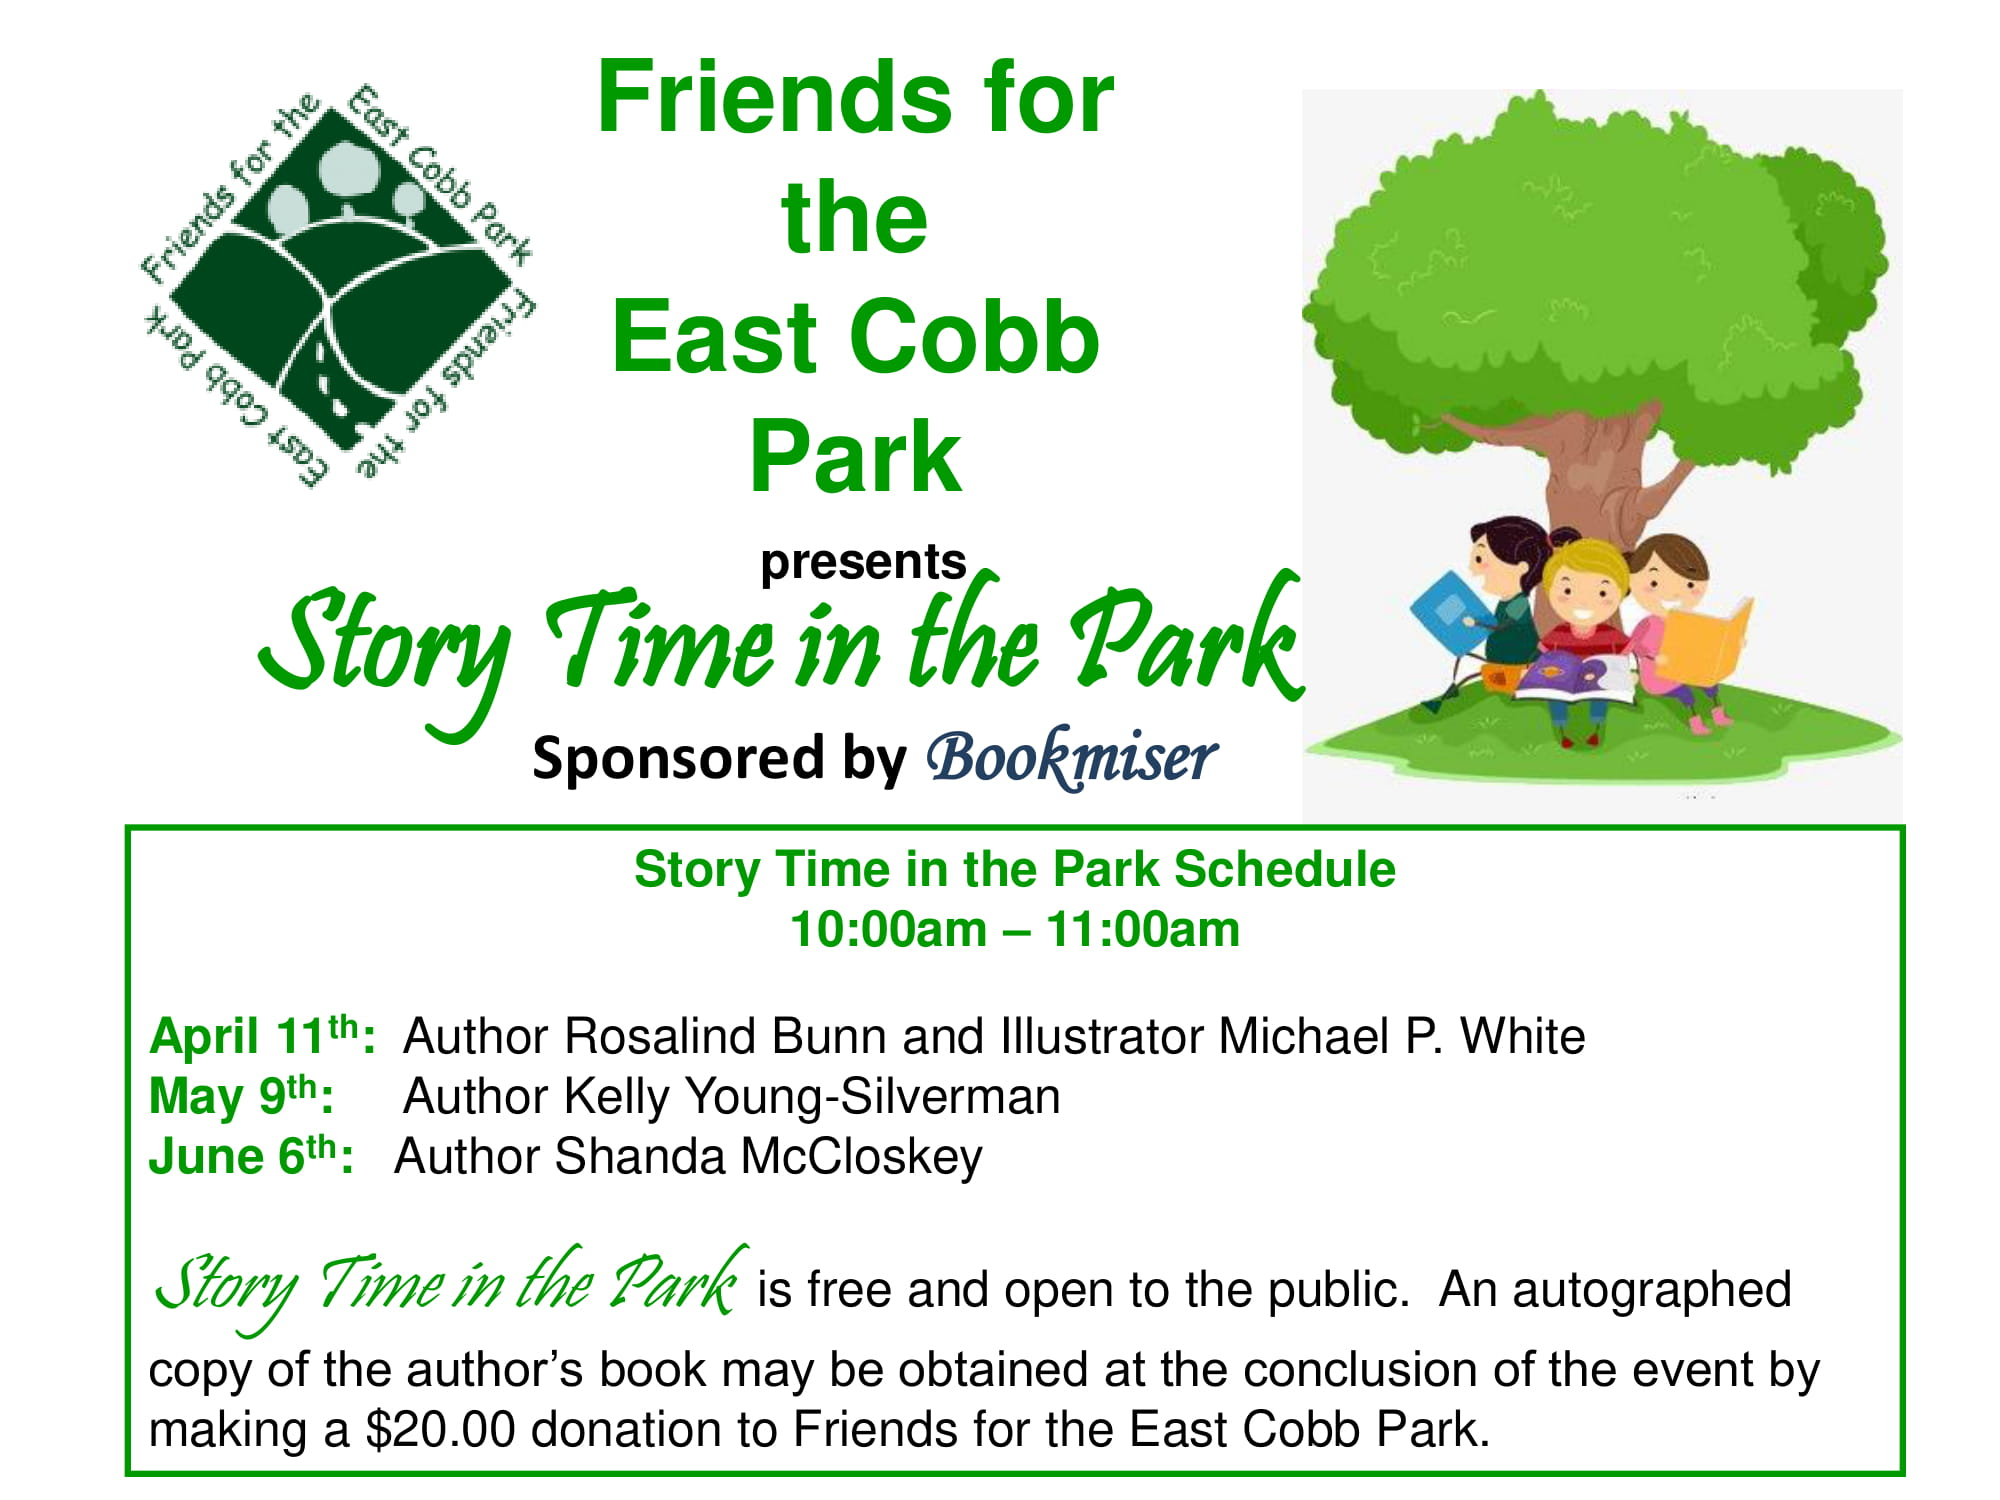 Story Time in the Park (East Cobb Park Sponsored by Bookmiser